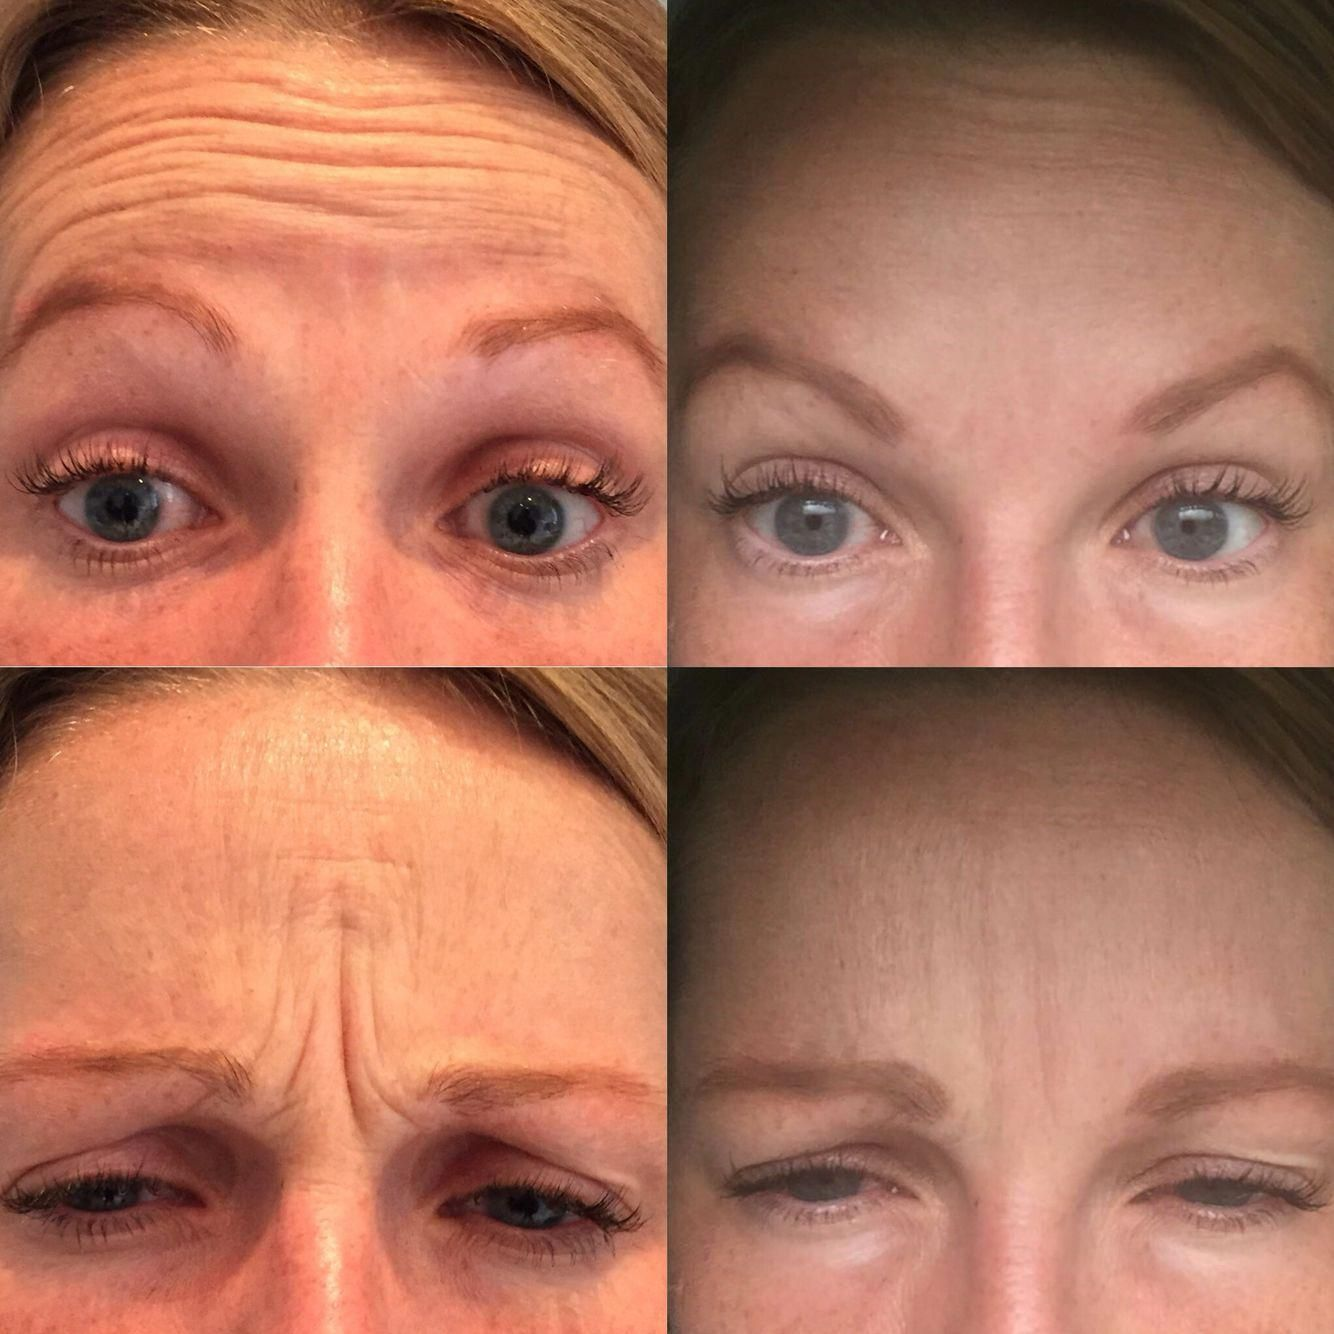 Azzalure before and after anti-wrinkle injection treatments  That